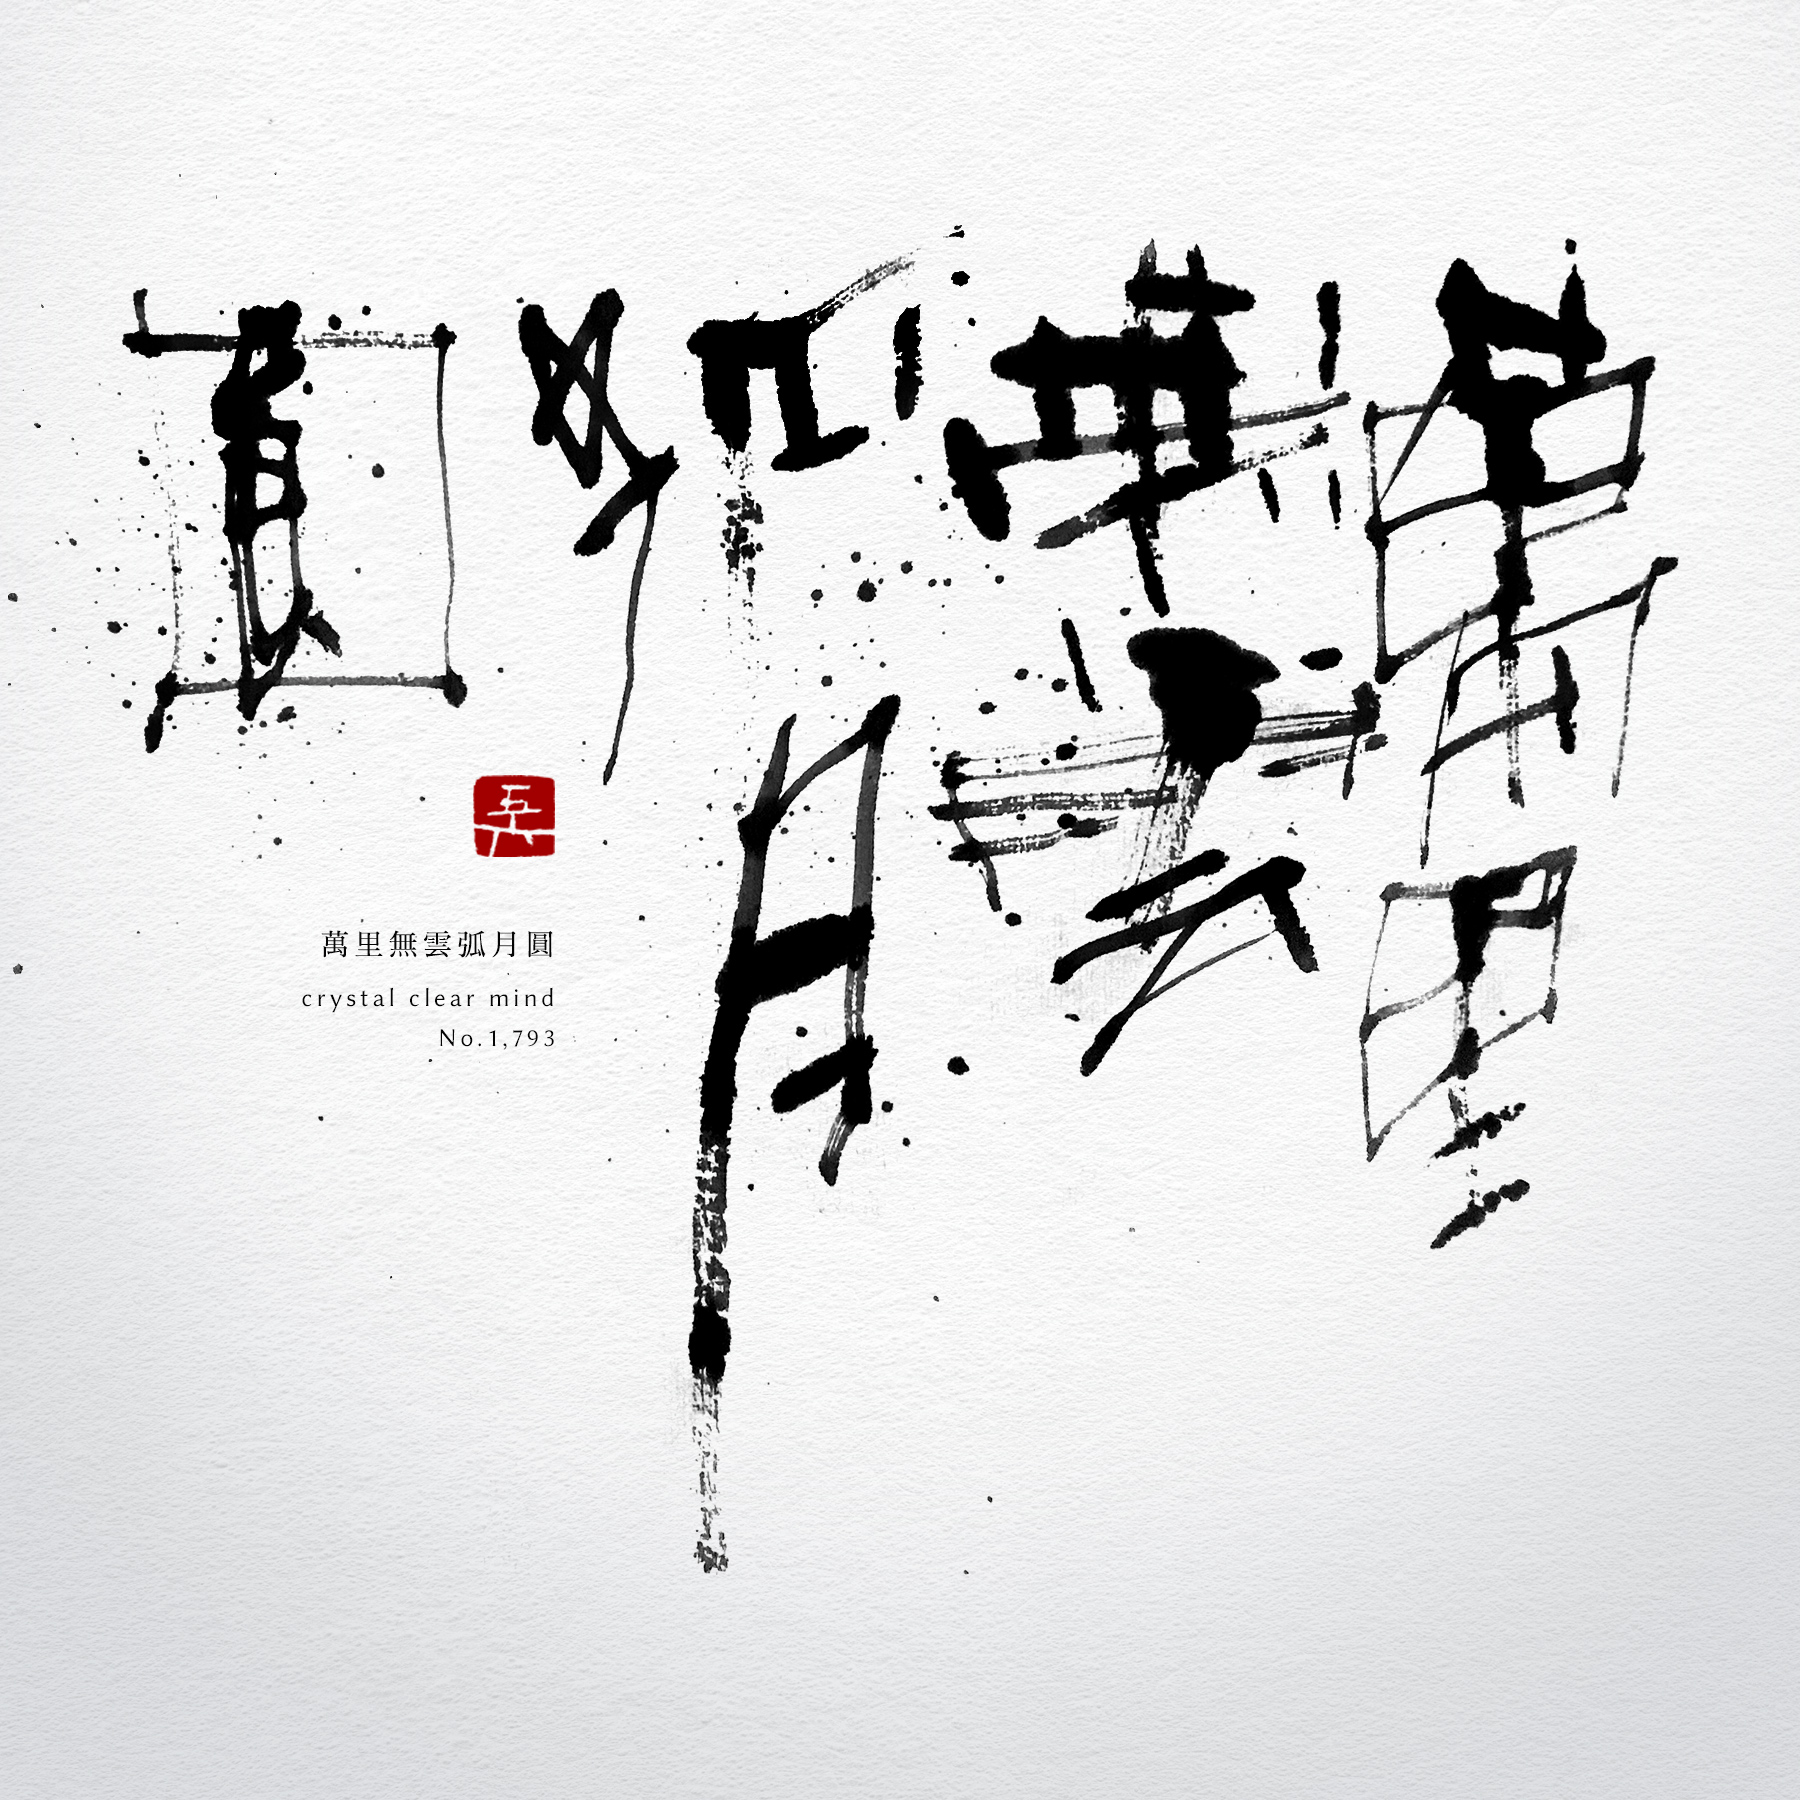 萬里無雲弧月圓 | crystal clear mind 書道作品 japaneseart japanese calligraphy 書家 田川悟郎 Goroh Tagawa